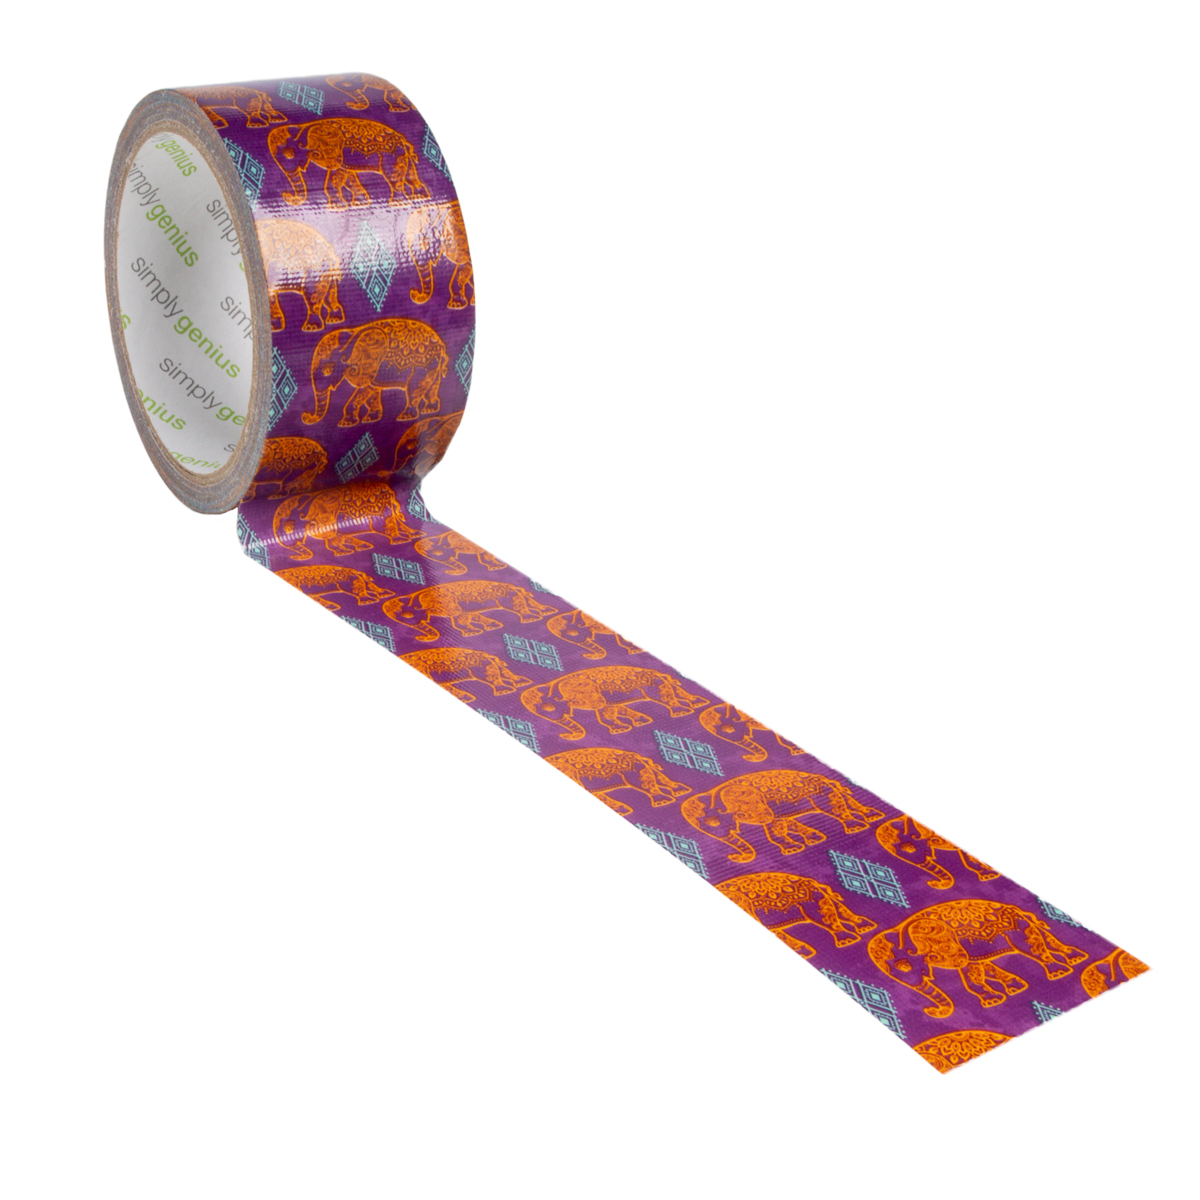 Simply-Genius-Duct-Tape-Roll-Colors-Patterns-Craft-Supplies-Colored-amp-Patterned thumbnail 53